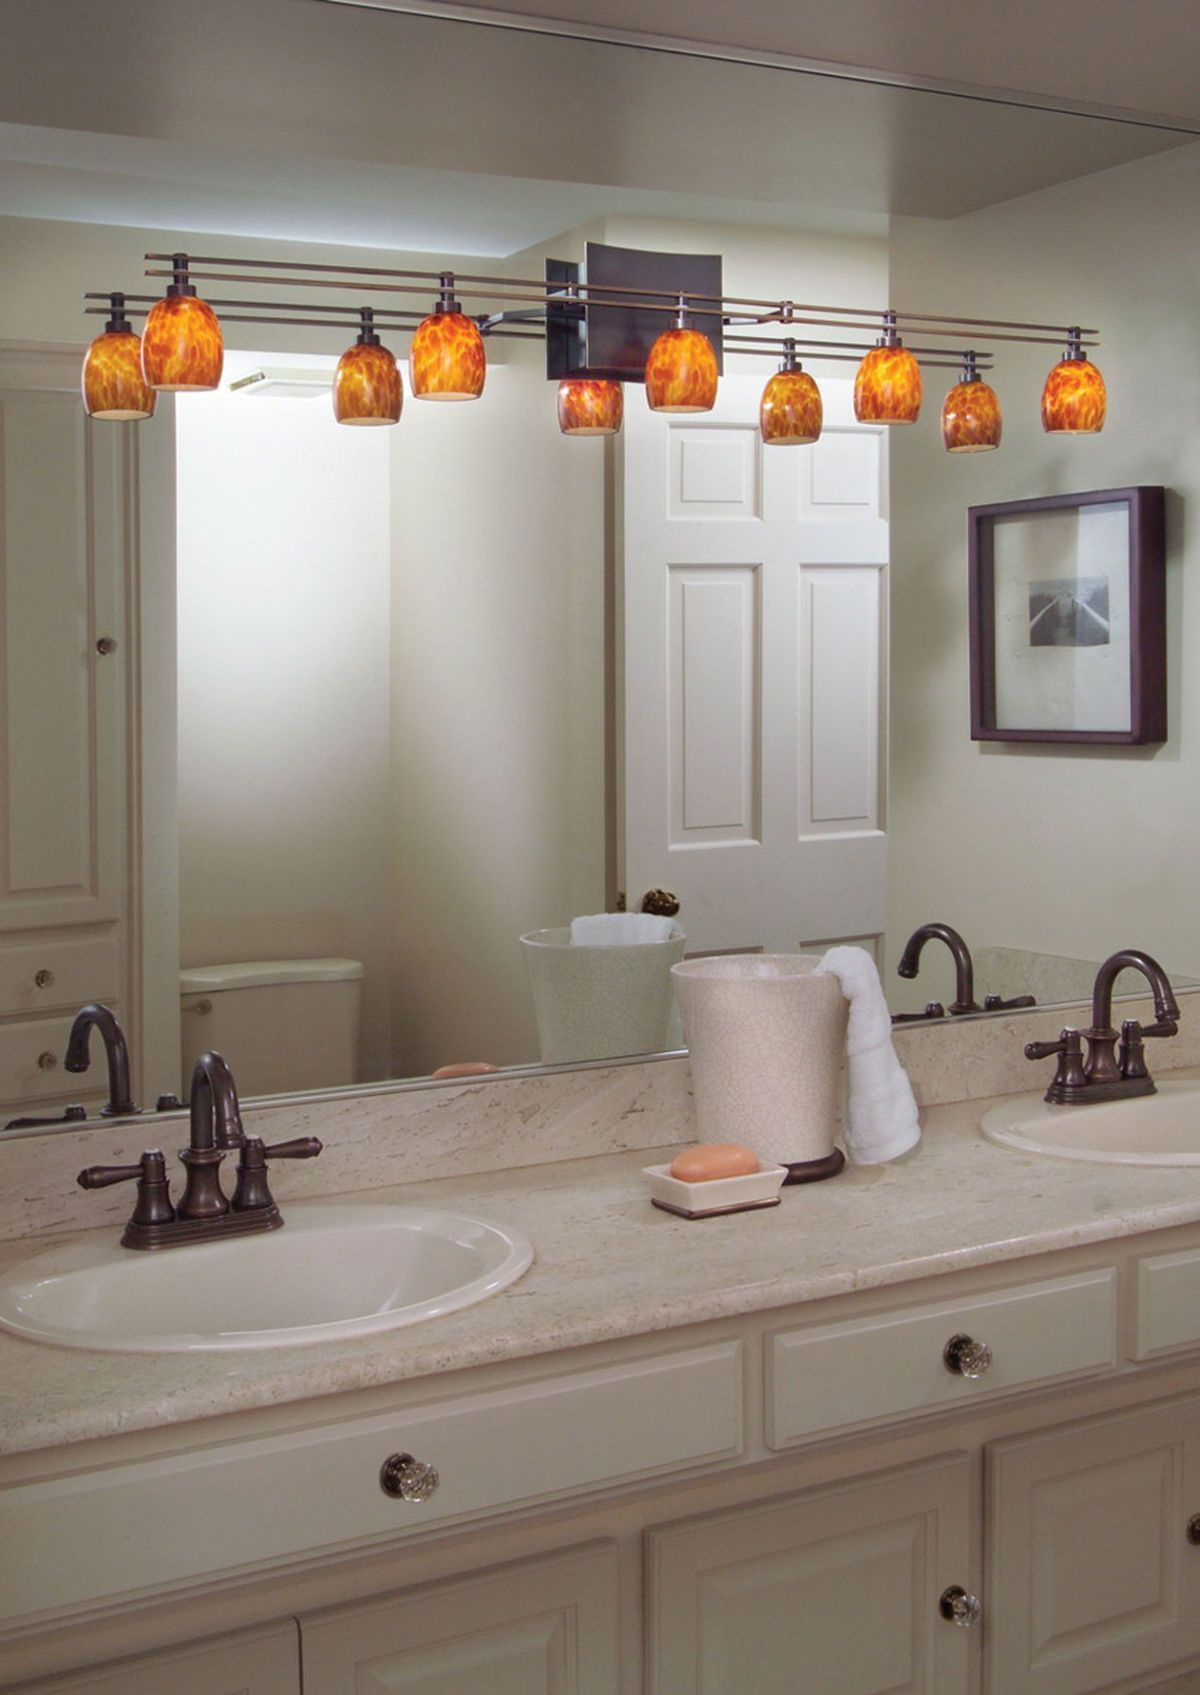 Delightful Track Lighting In A Small Bathroom